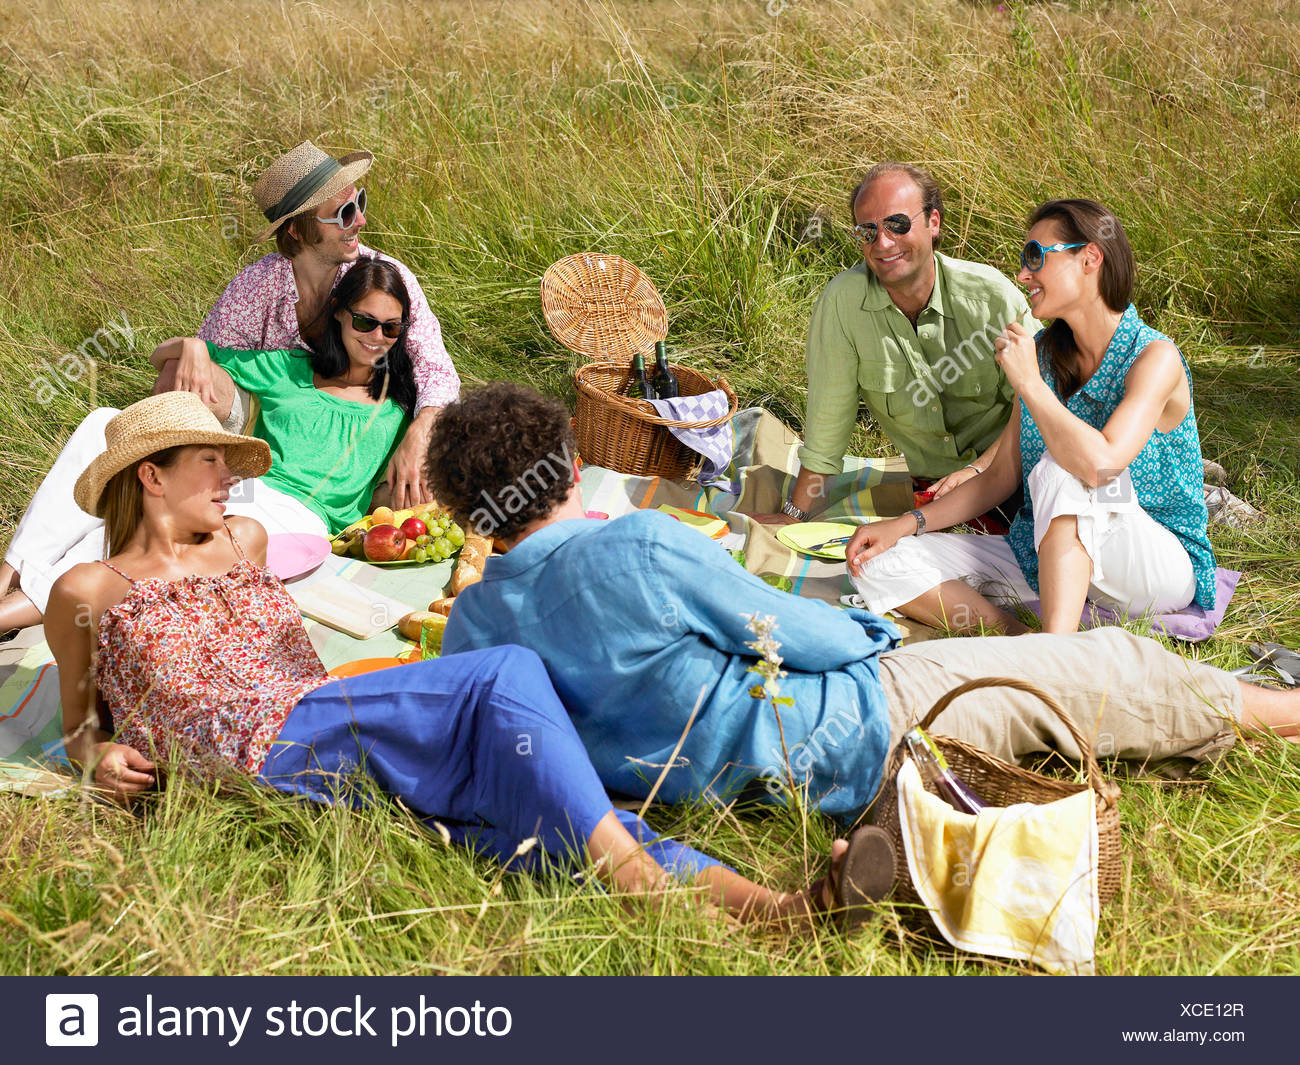 Group of friends having a picnic - Stock Image